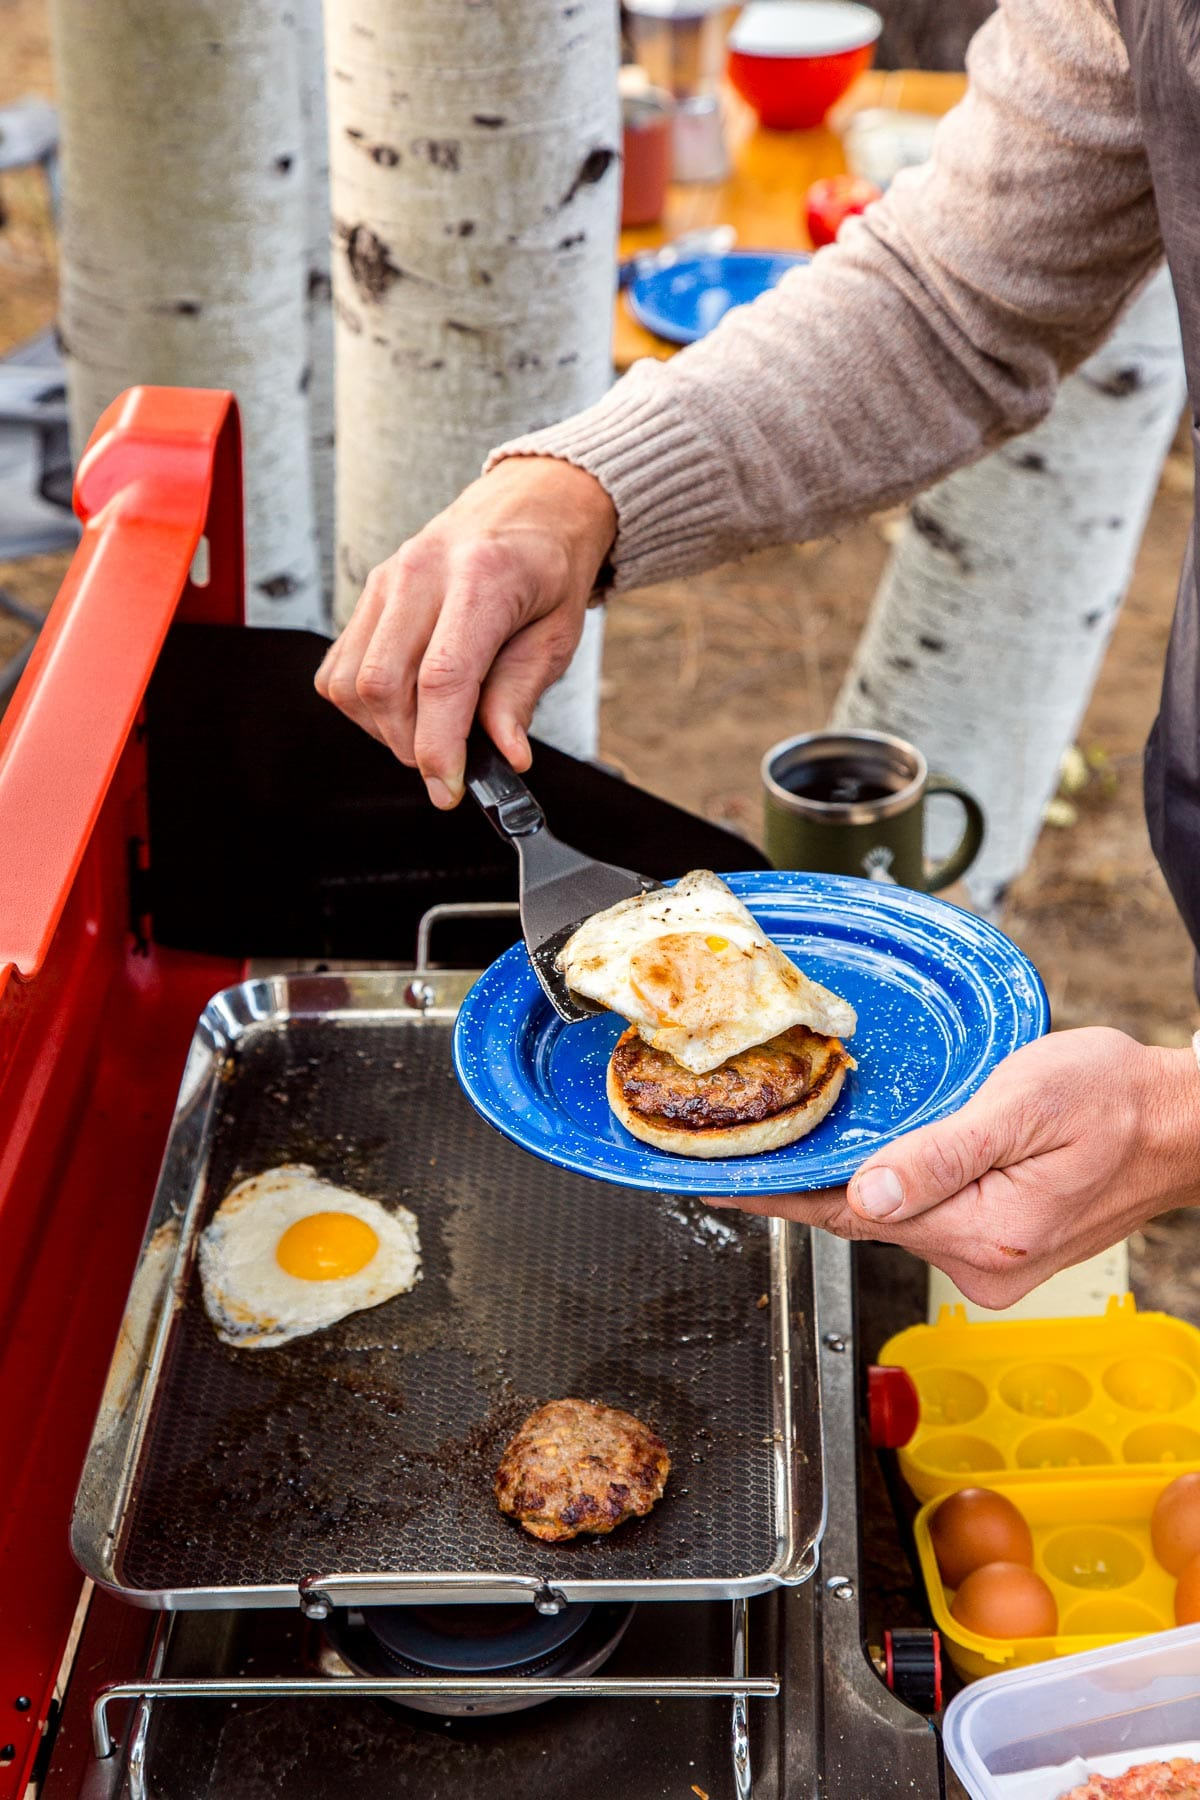 Michael is holding a plate with an english muffin and sausage on it. He is using a spatula to place an egg on top.